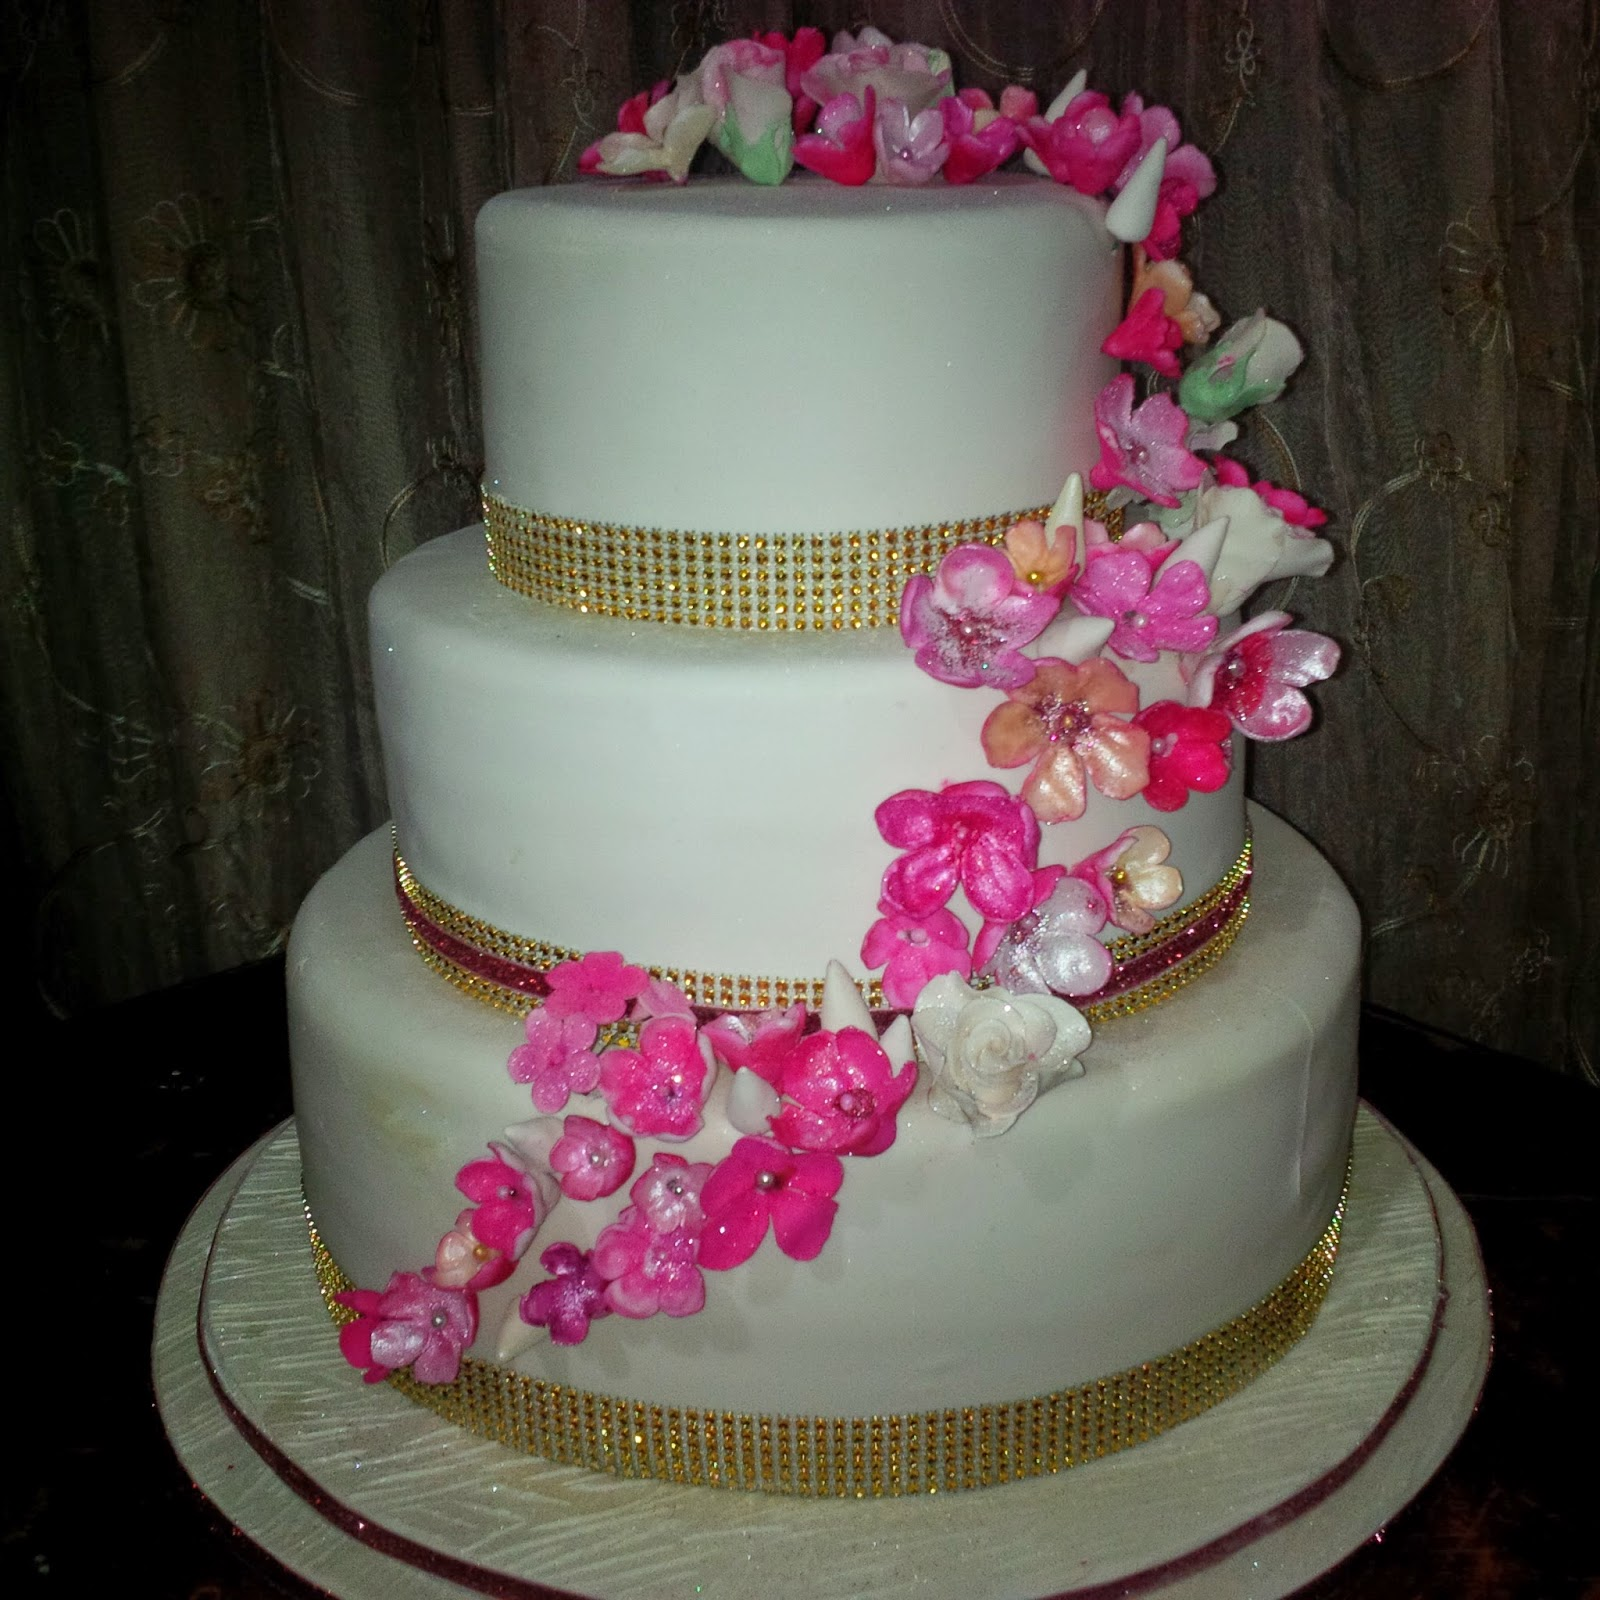 This is My Gistertainment: Cakes by Creamy Delight Cakes